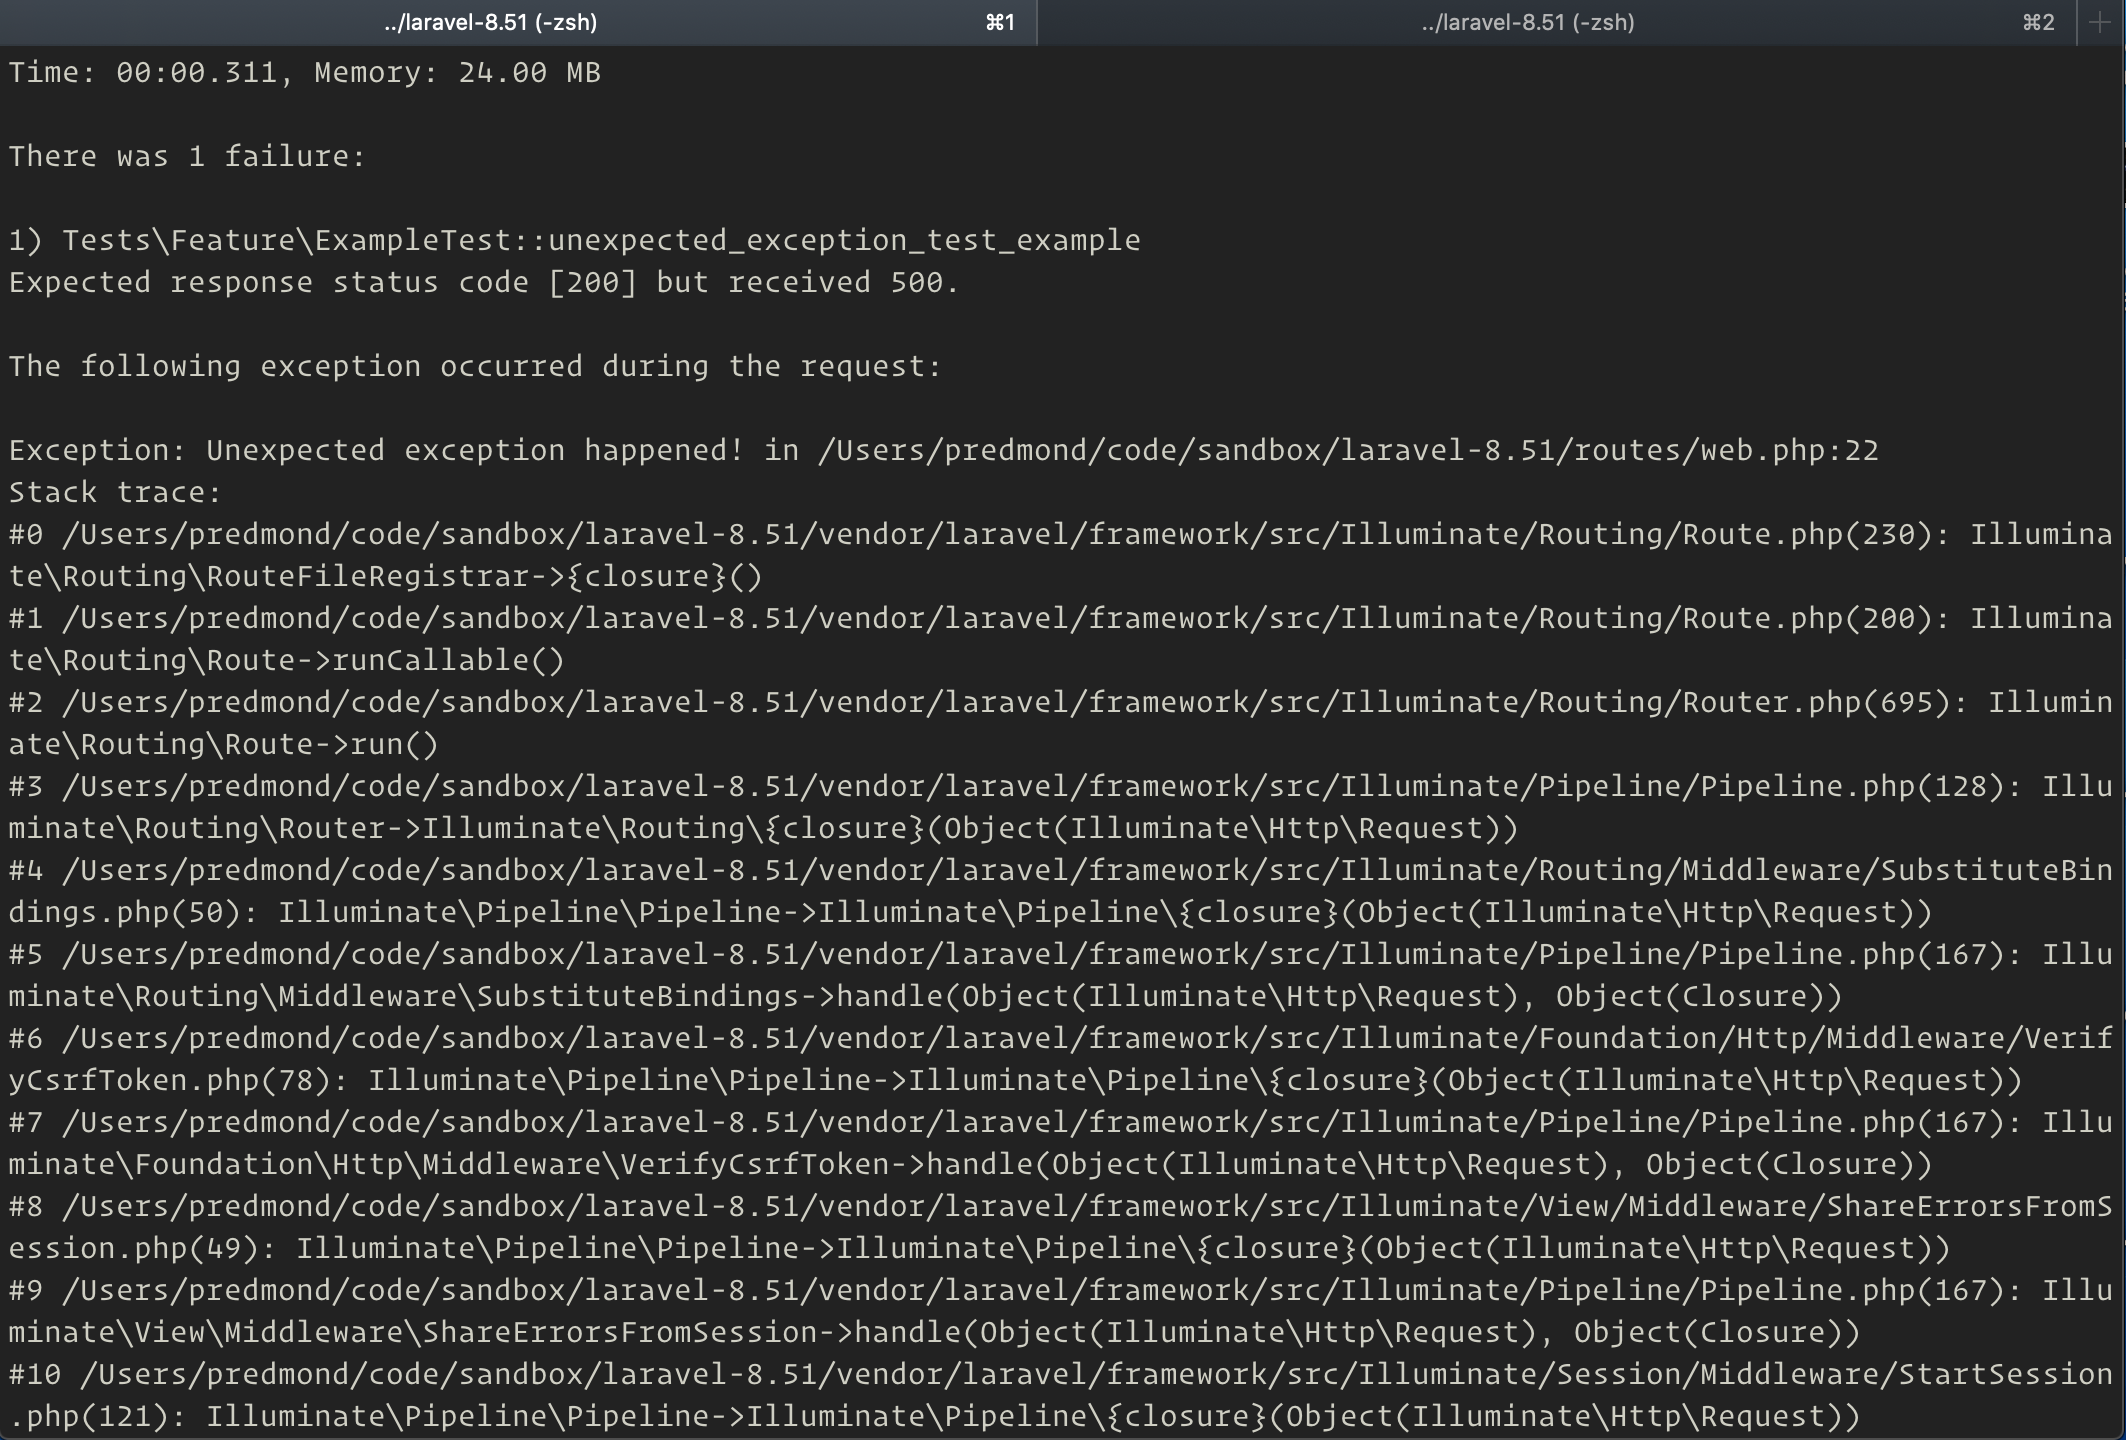 failed test with stack trace